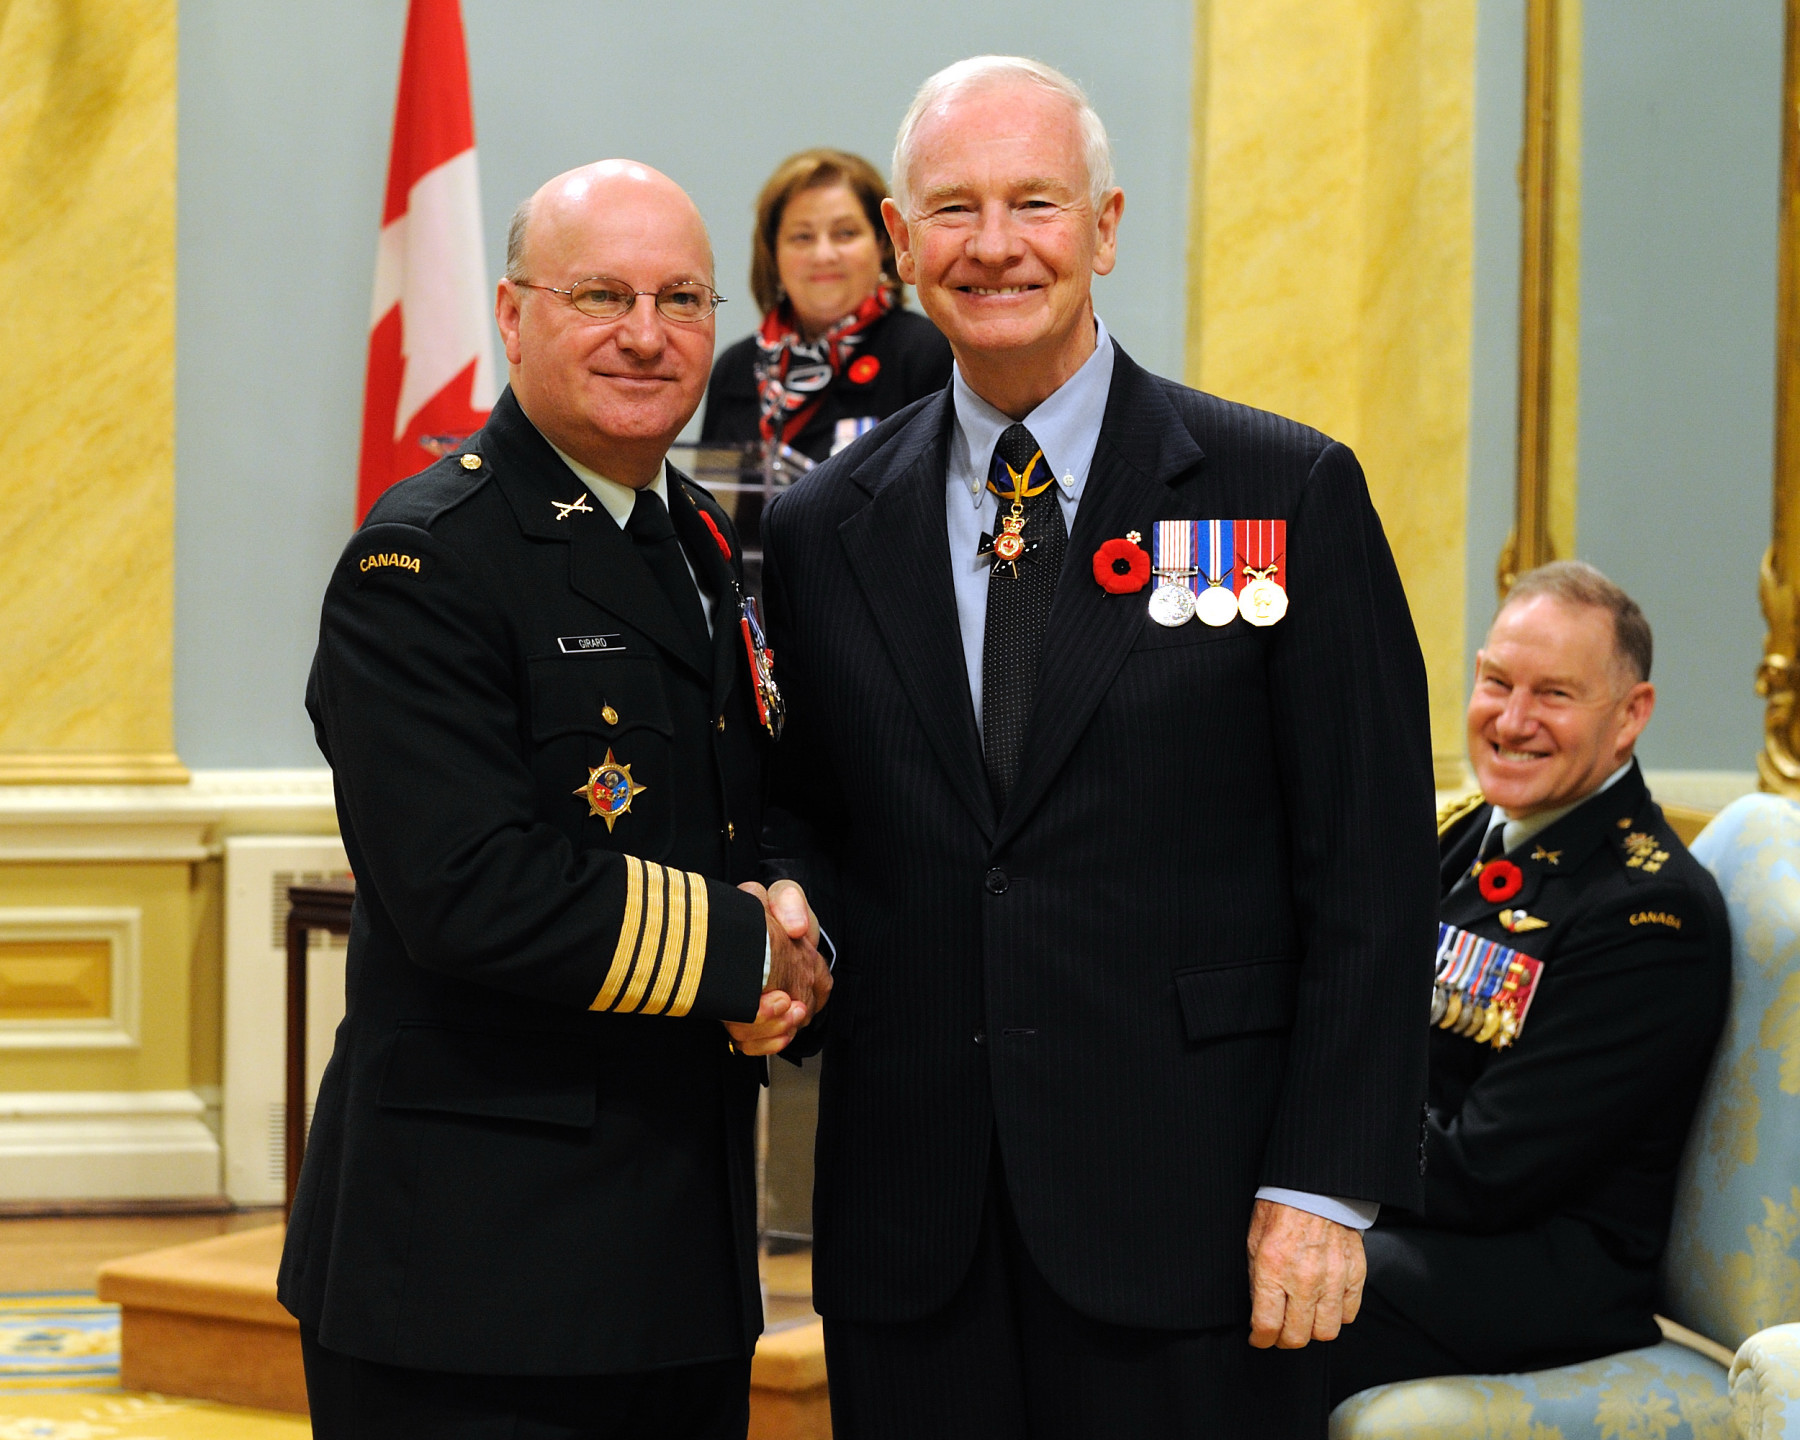 Colonel J. J. Martin Girard, M.S.M., C.D., received the Meritorious Service Medal (Military Division) from the Governor General. Colonel Girard was deployed to Haiti as the commander of Task Force Port-au-Prince from July 2008 to August 2009. Occupying a senior leadership role as the chief of staff to the United Nations force commander, he established relationships with key stakeholders that facilitated the operations of the international stabilization mission. His outstanding coordination of 7 000 multinational soldiers and interaction with international aid agencies enabled an organized relief effort during Haiti's hurricane crisis, played a prominent role in supporting senatorial elections and led to the implementation of a quick-reaction force that quickly quelled rioting in the country.